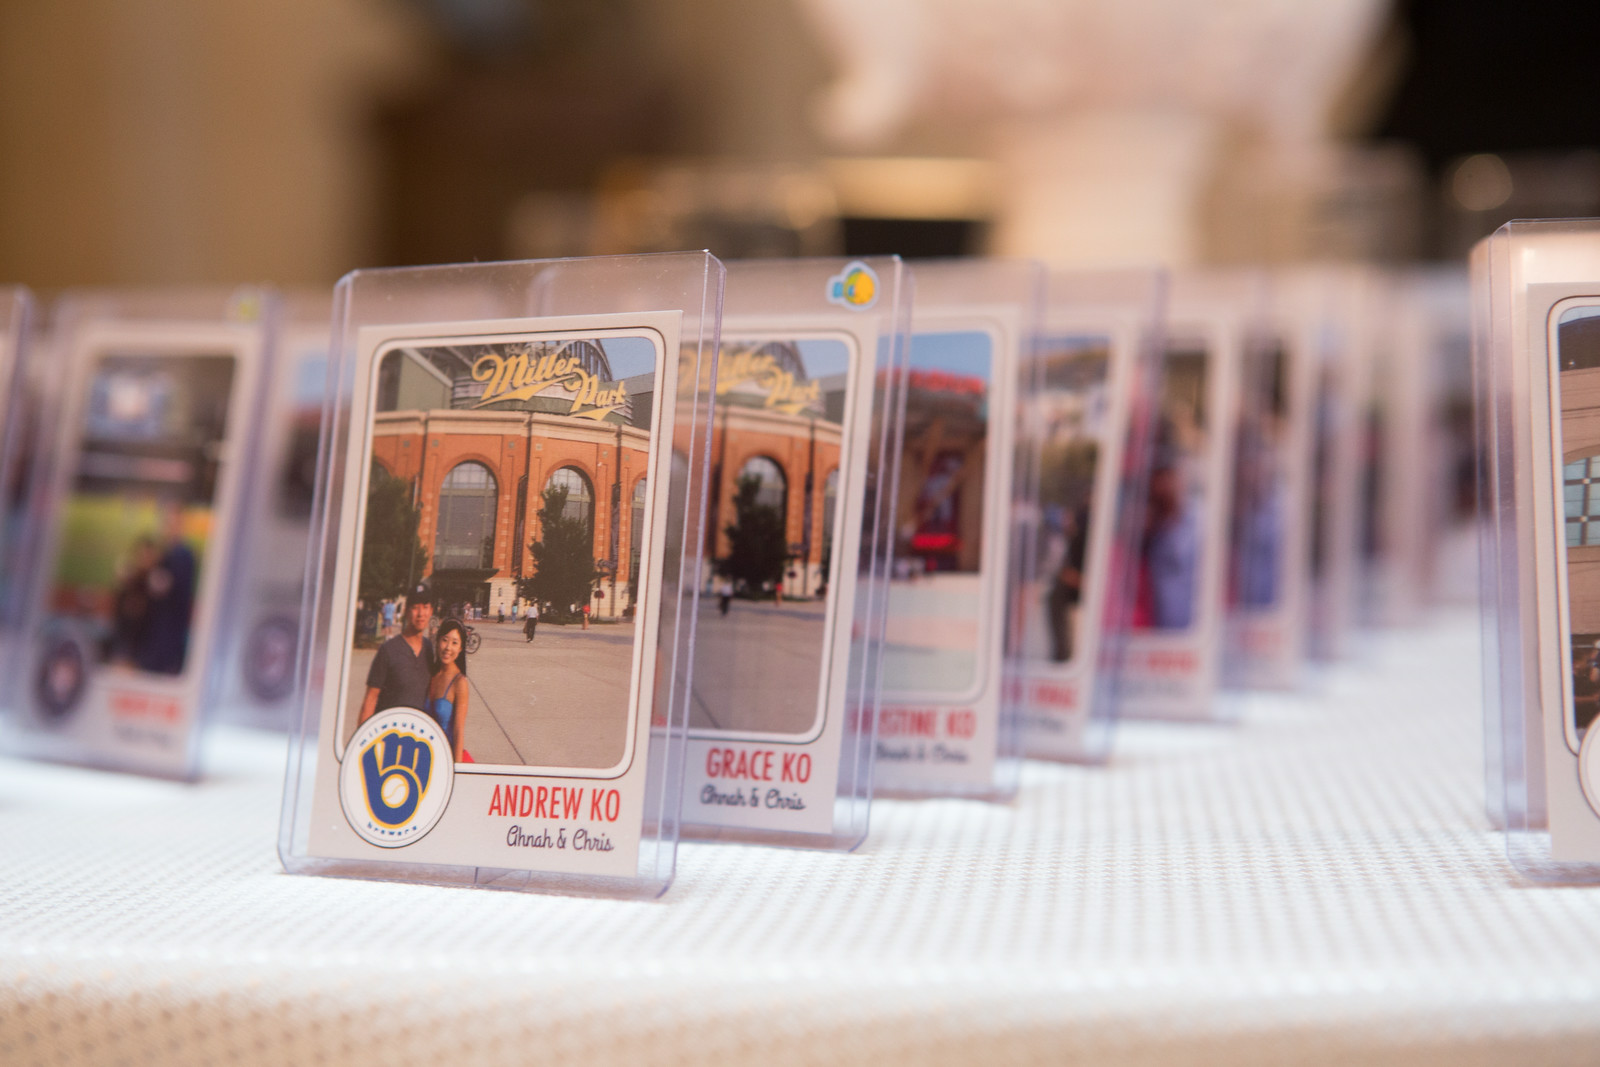 personalized baseball cards as escort cards at wedding